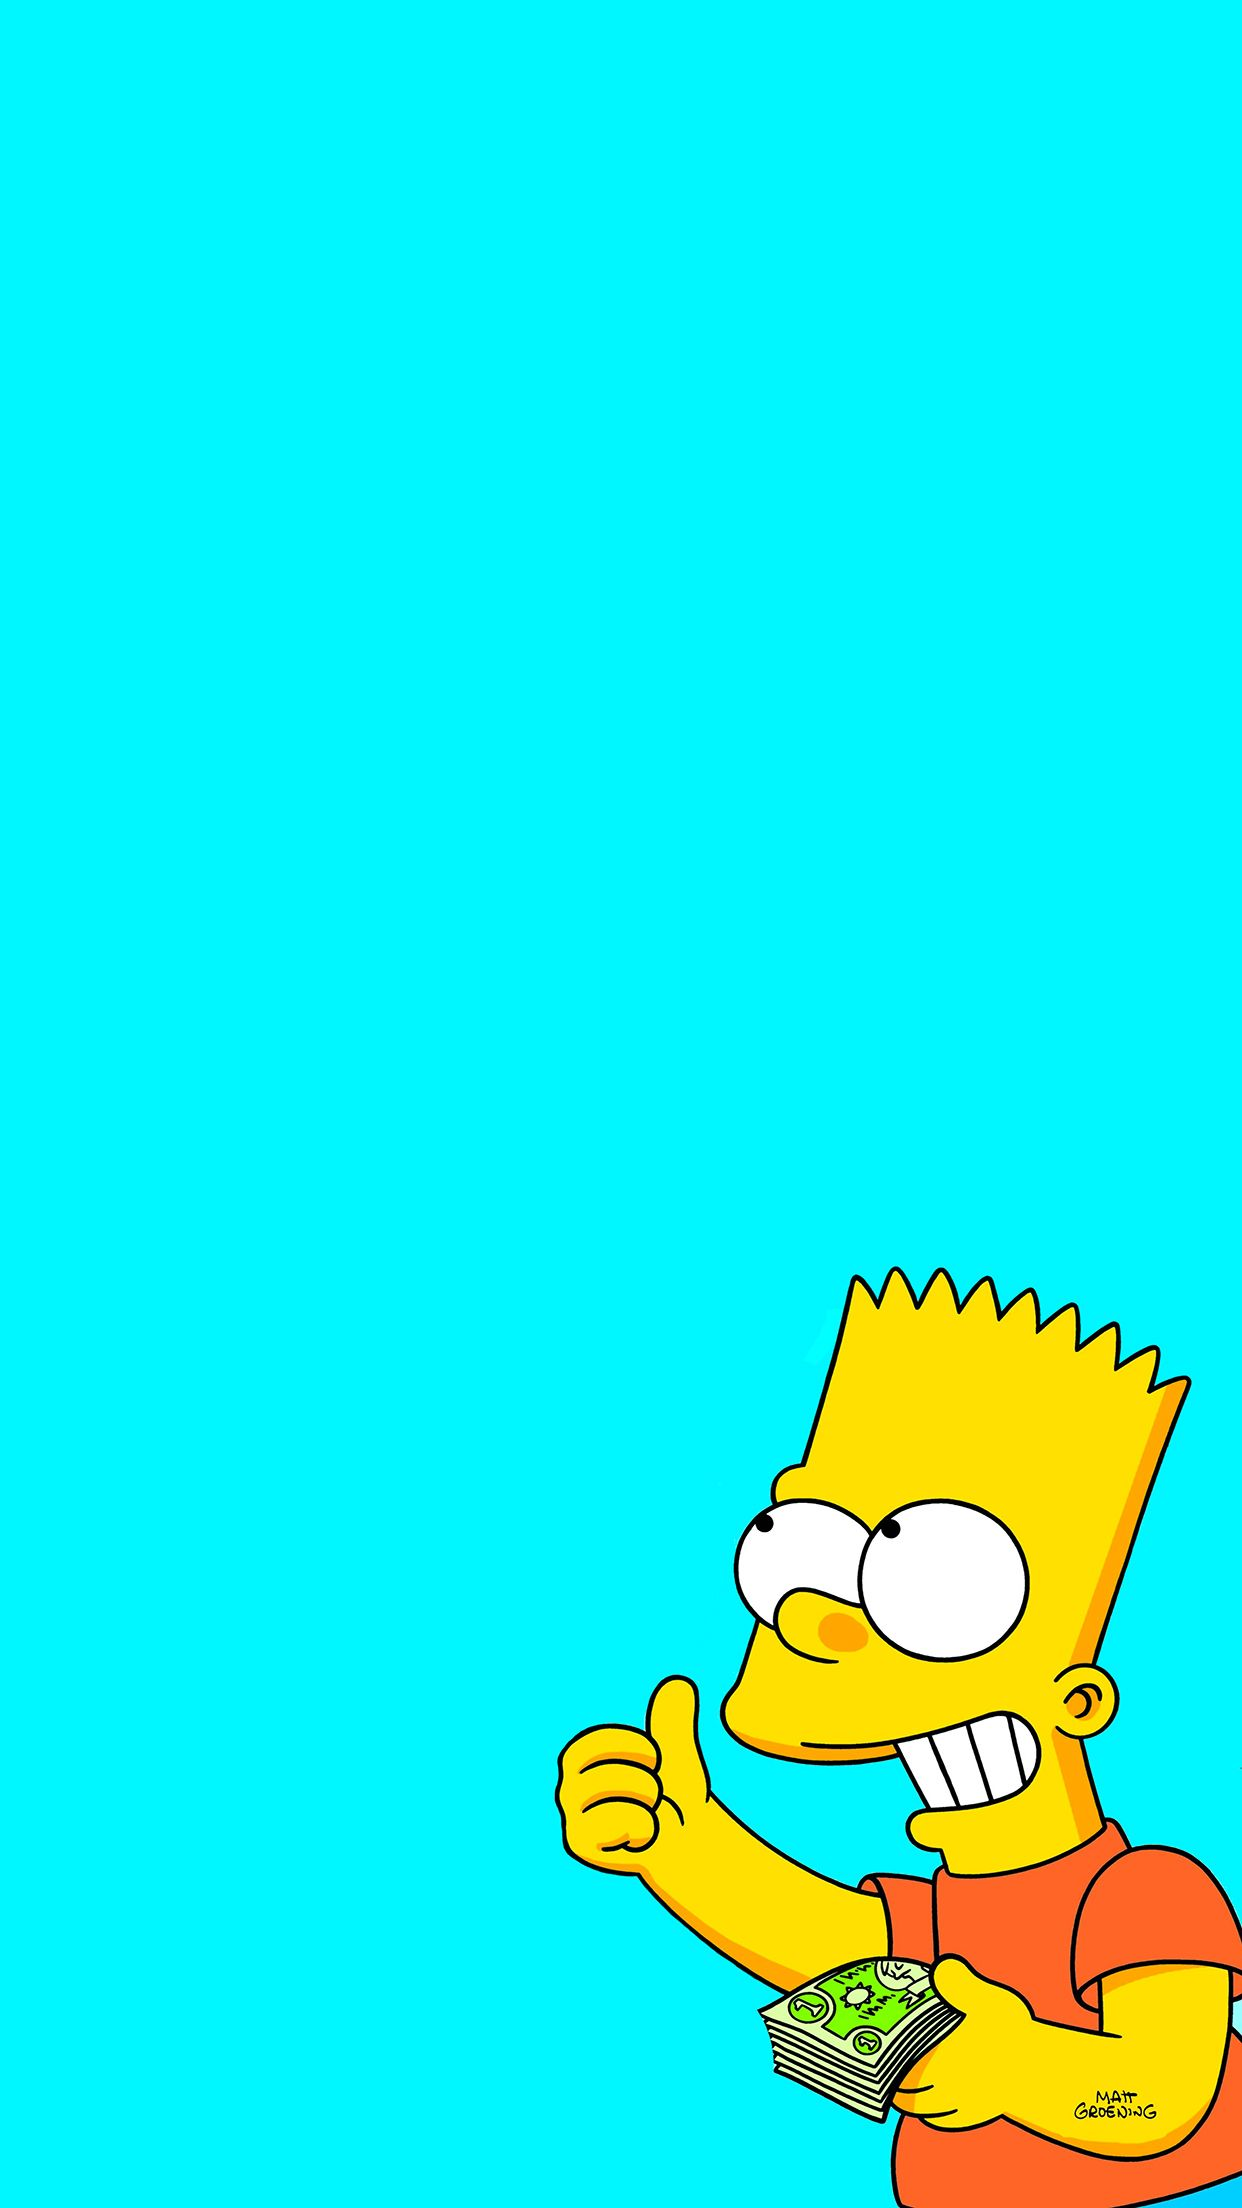 Aesthetic Bart Simpson Iphone Wallpapers Top Free Aesthetic Bart